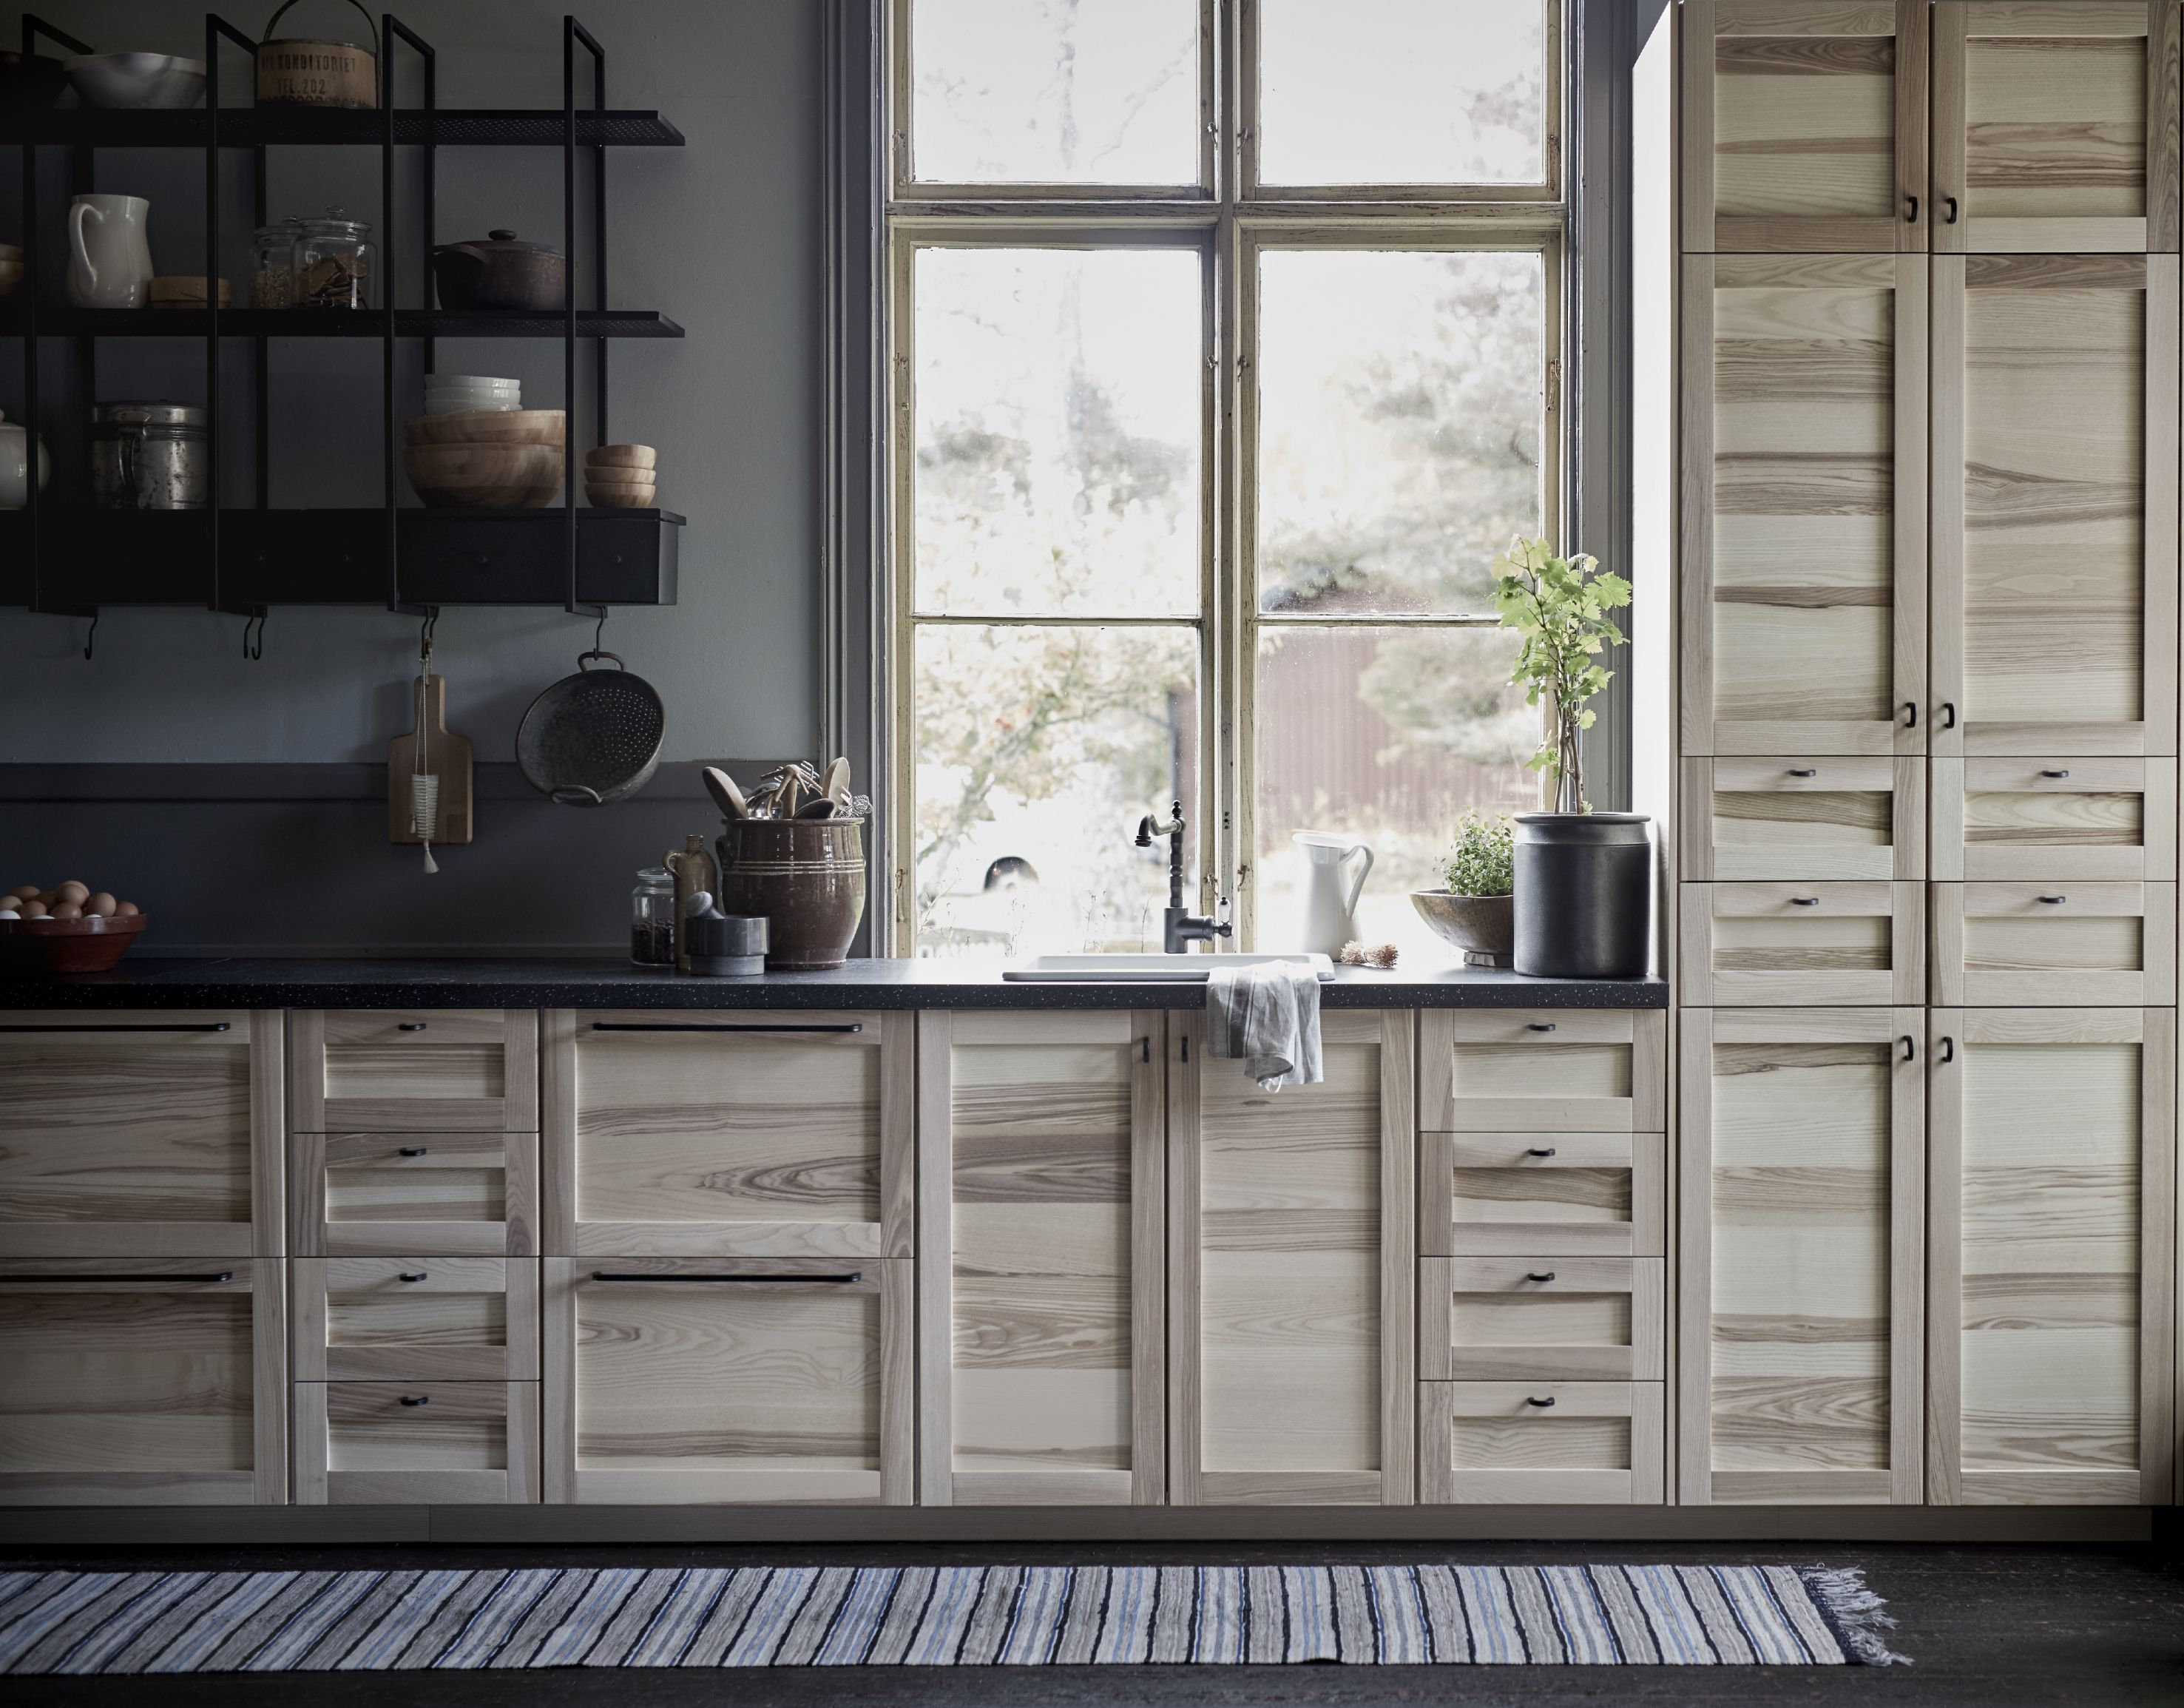 Torhamn kitchen ikea kitchen ideas pinterest for Kitchen ideas pinterest